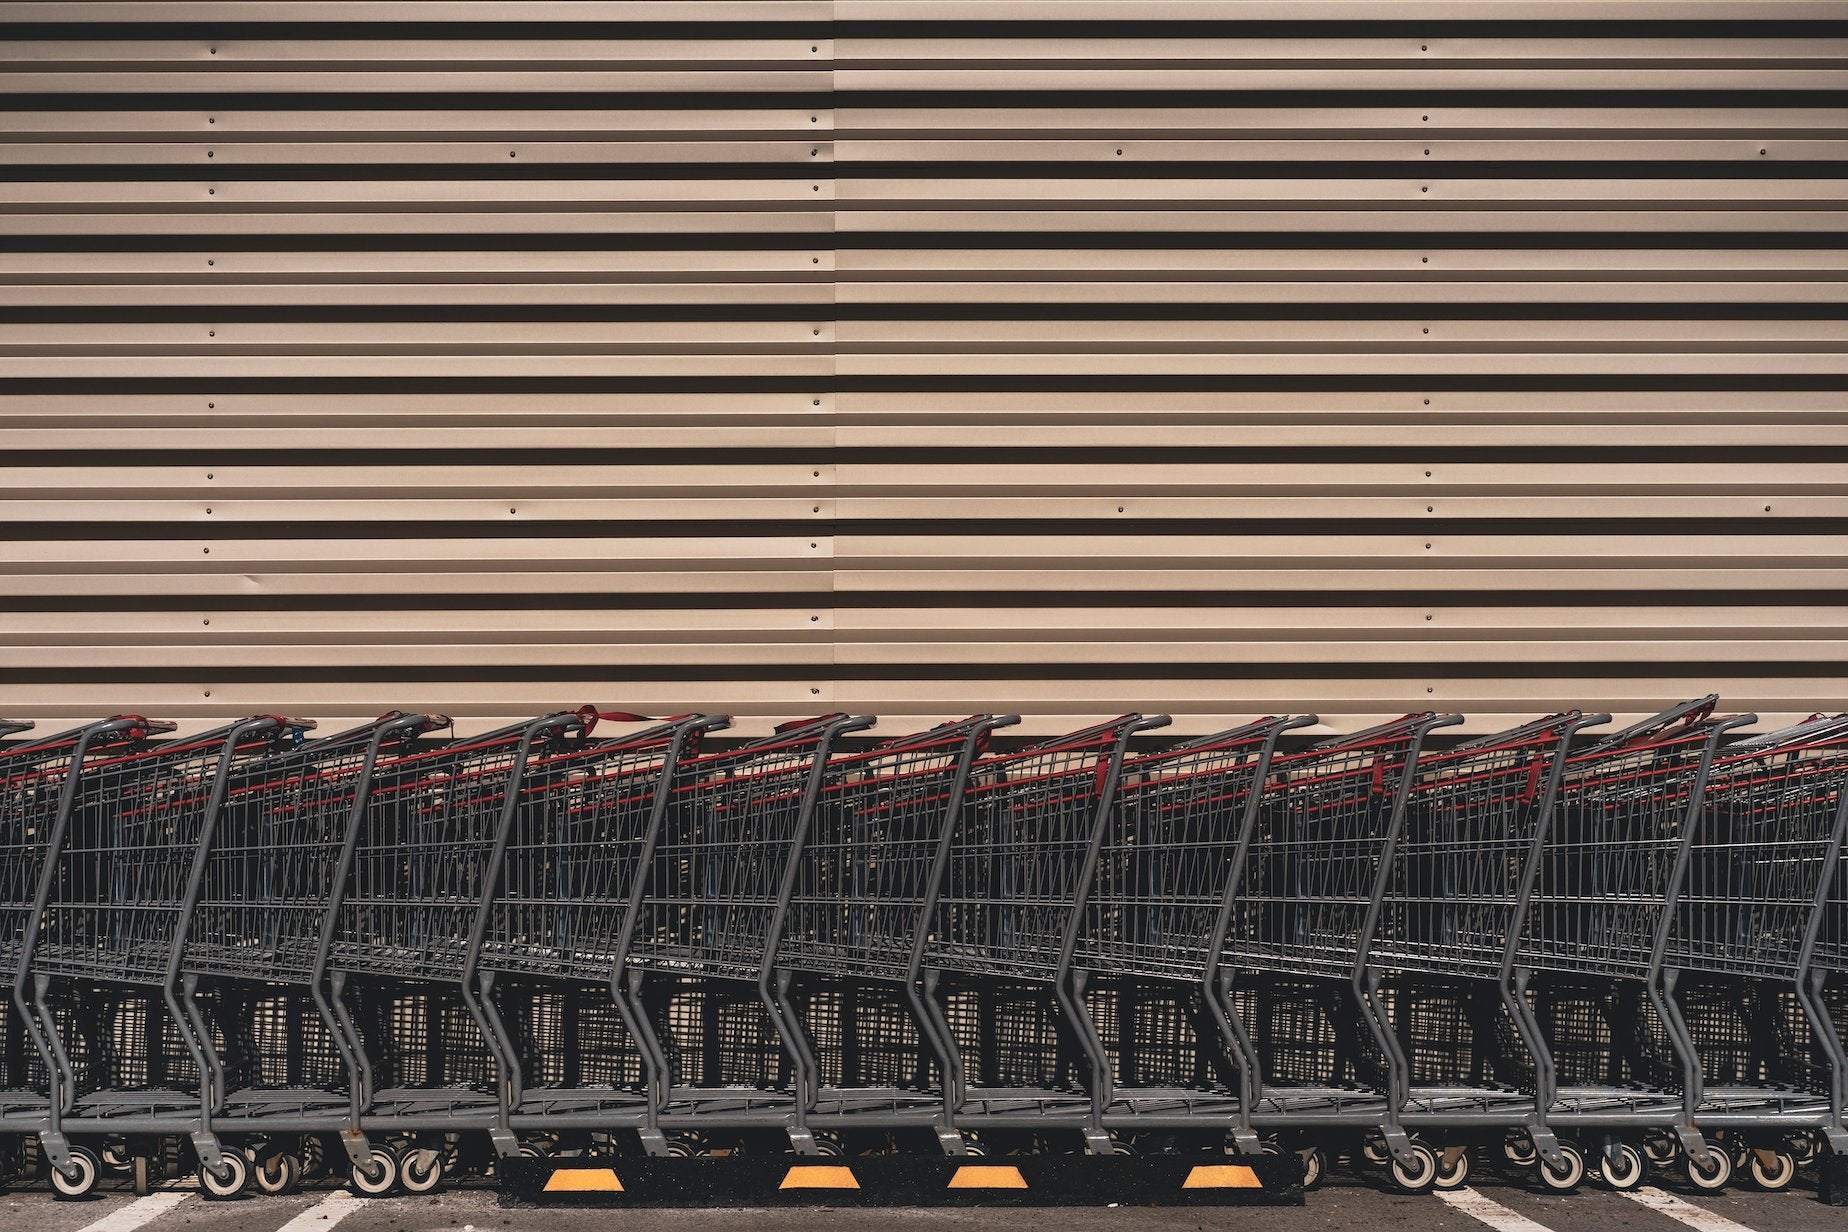 Shopping carts lined up in a straight line against a wall